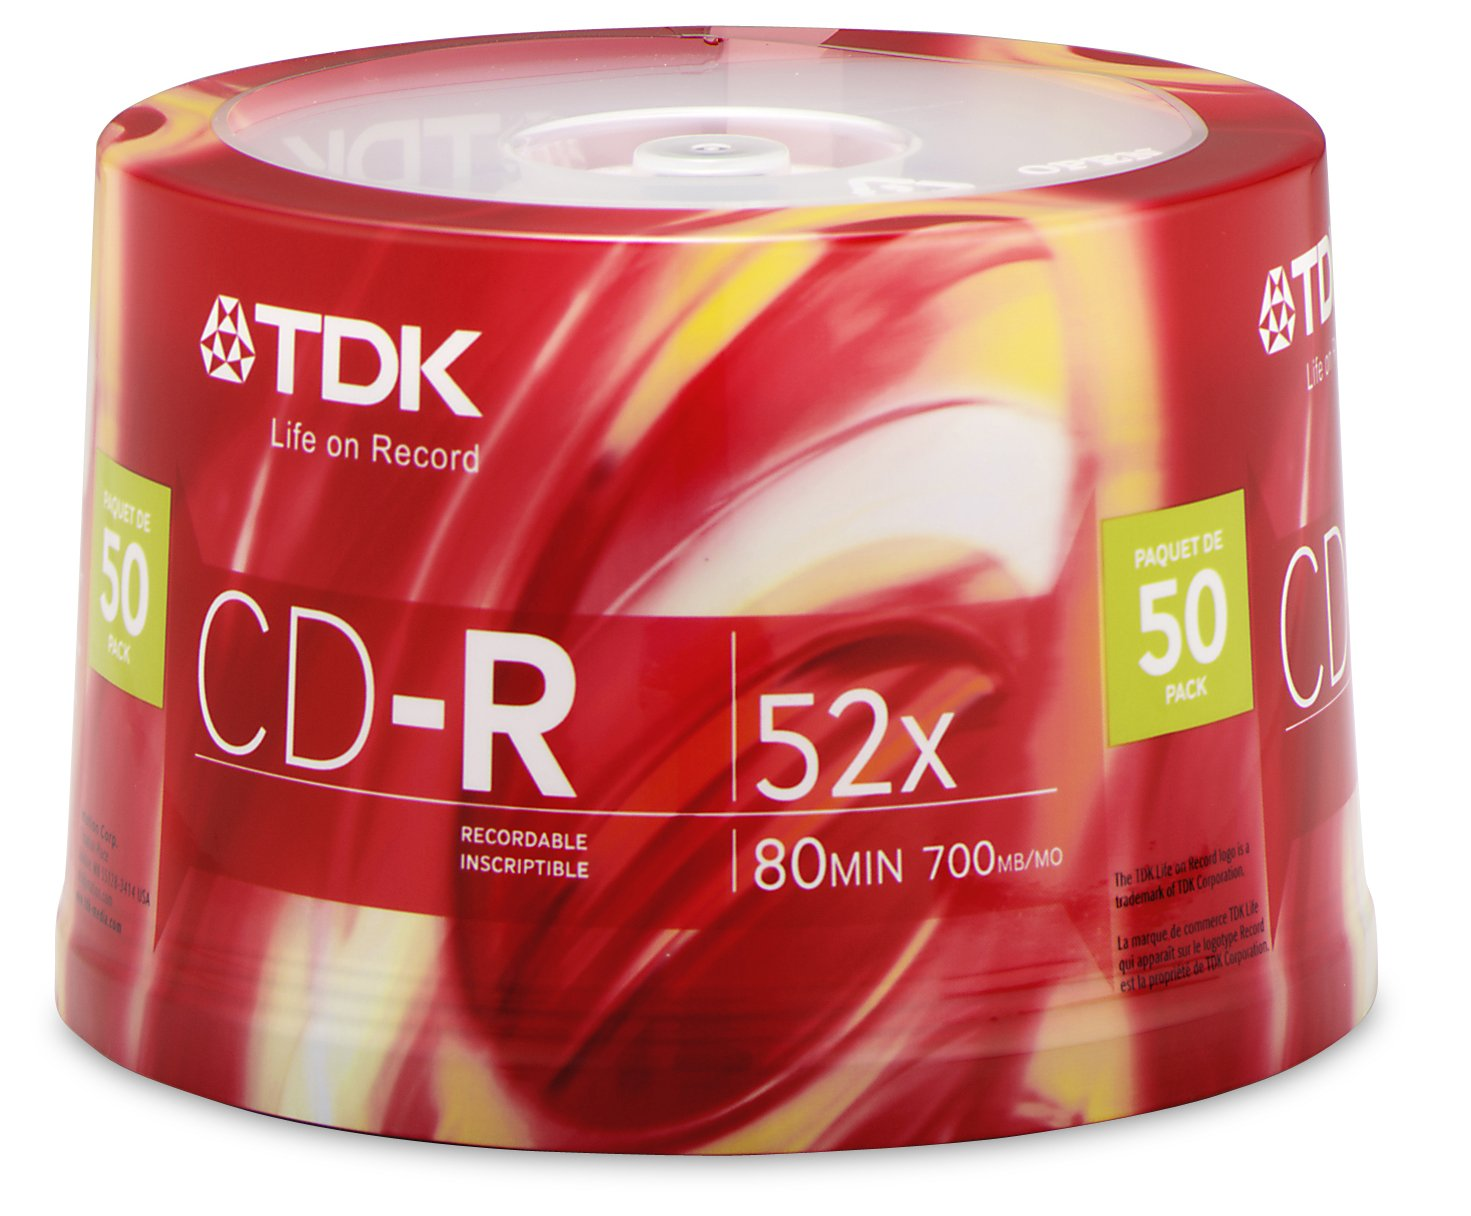 TDK CD-R80CB50 CD-R Data, 80 Minute, 700 MB, 52x 50-Pack Spindle (Discontinued by Manufacturer)